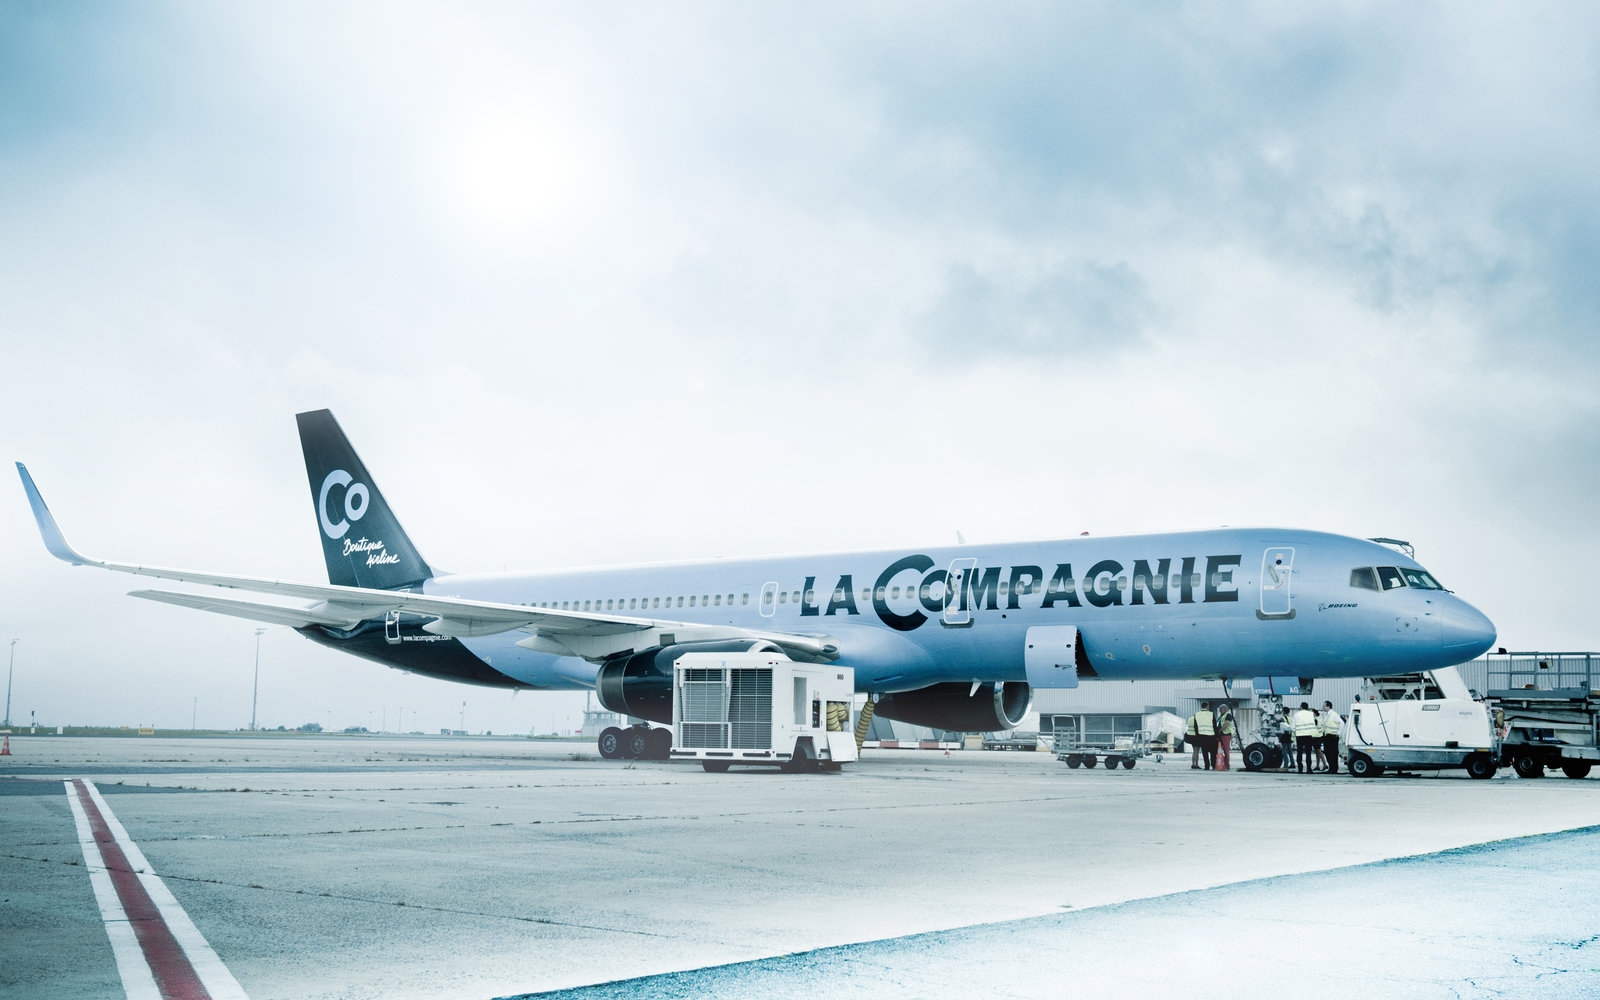 Αποτέλεσμα εικόνας για French Boutique Airline La Compagnie enters Interline Agreement (IET) with Hahn Air